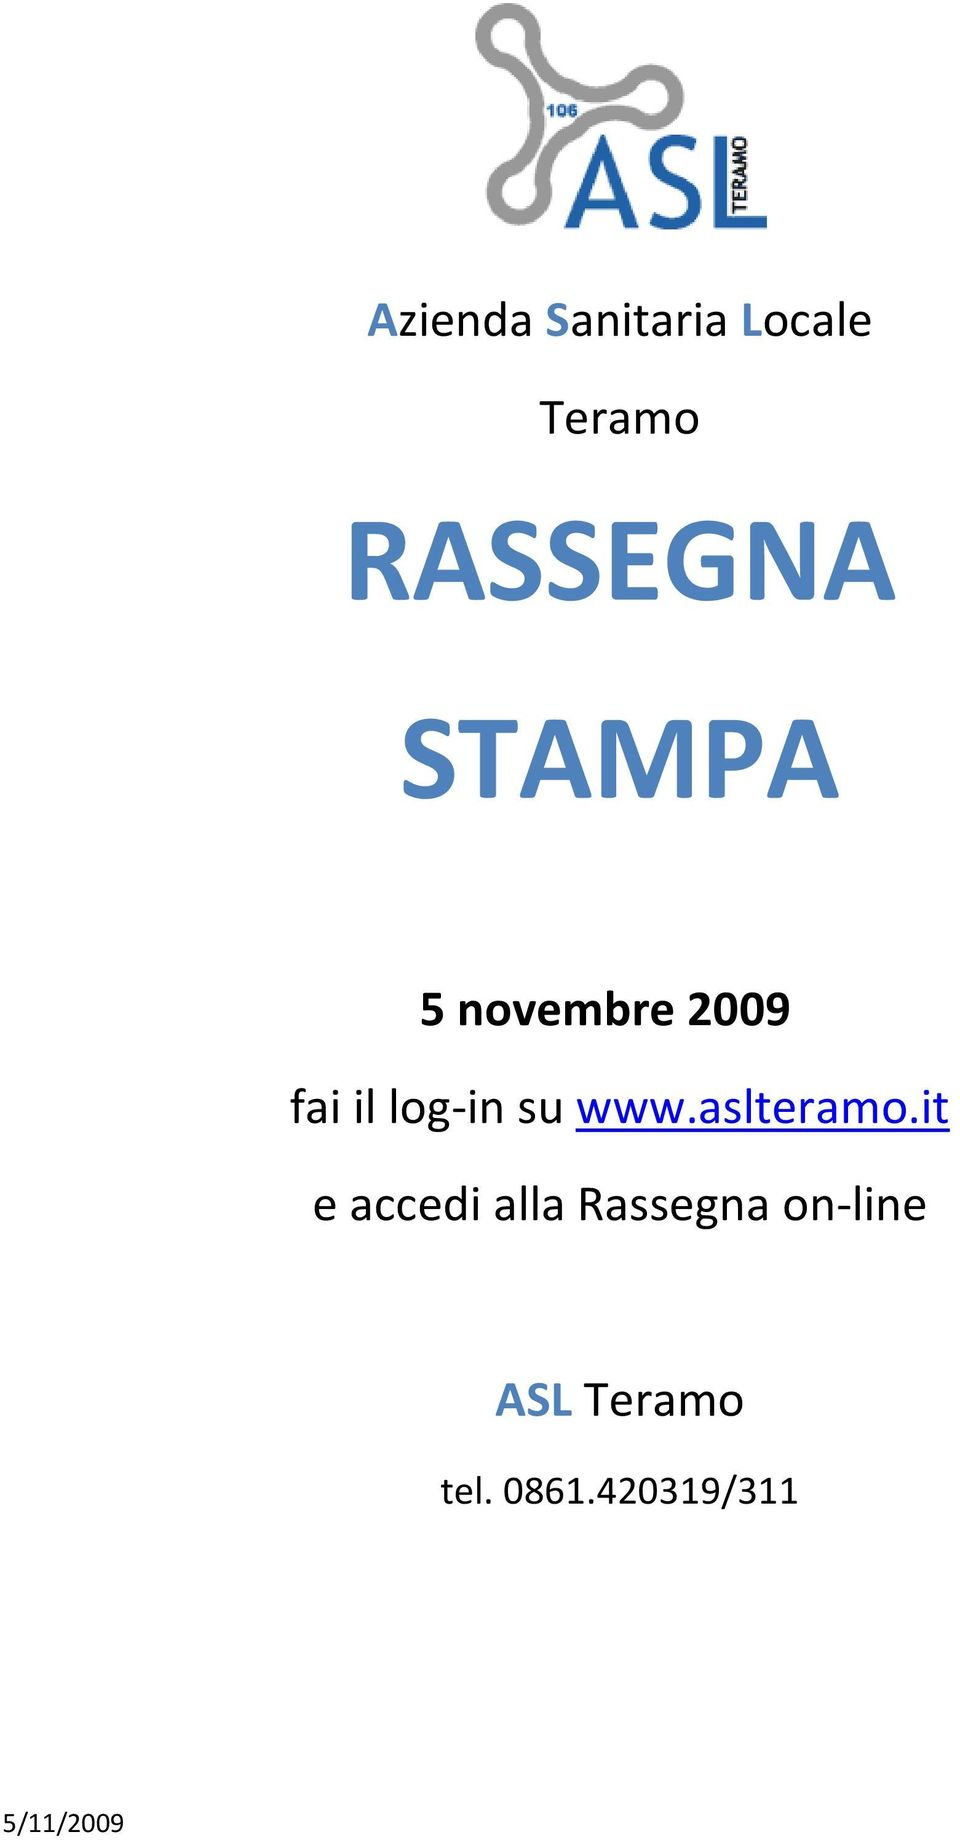 log-in su www.aslteramo.